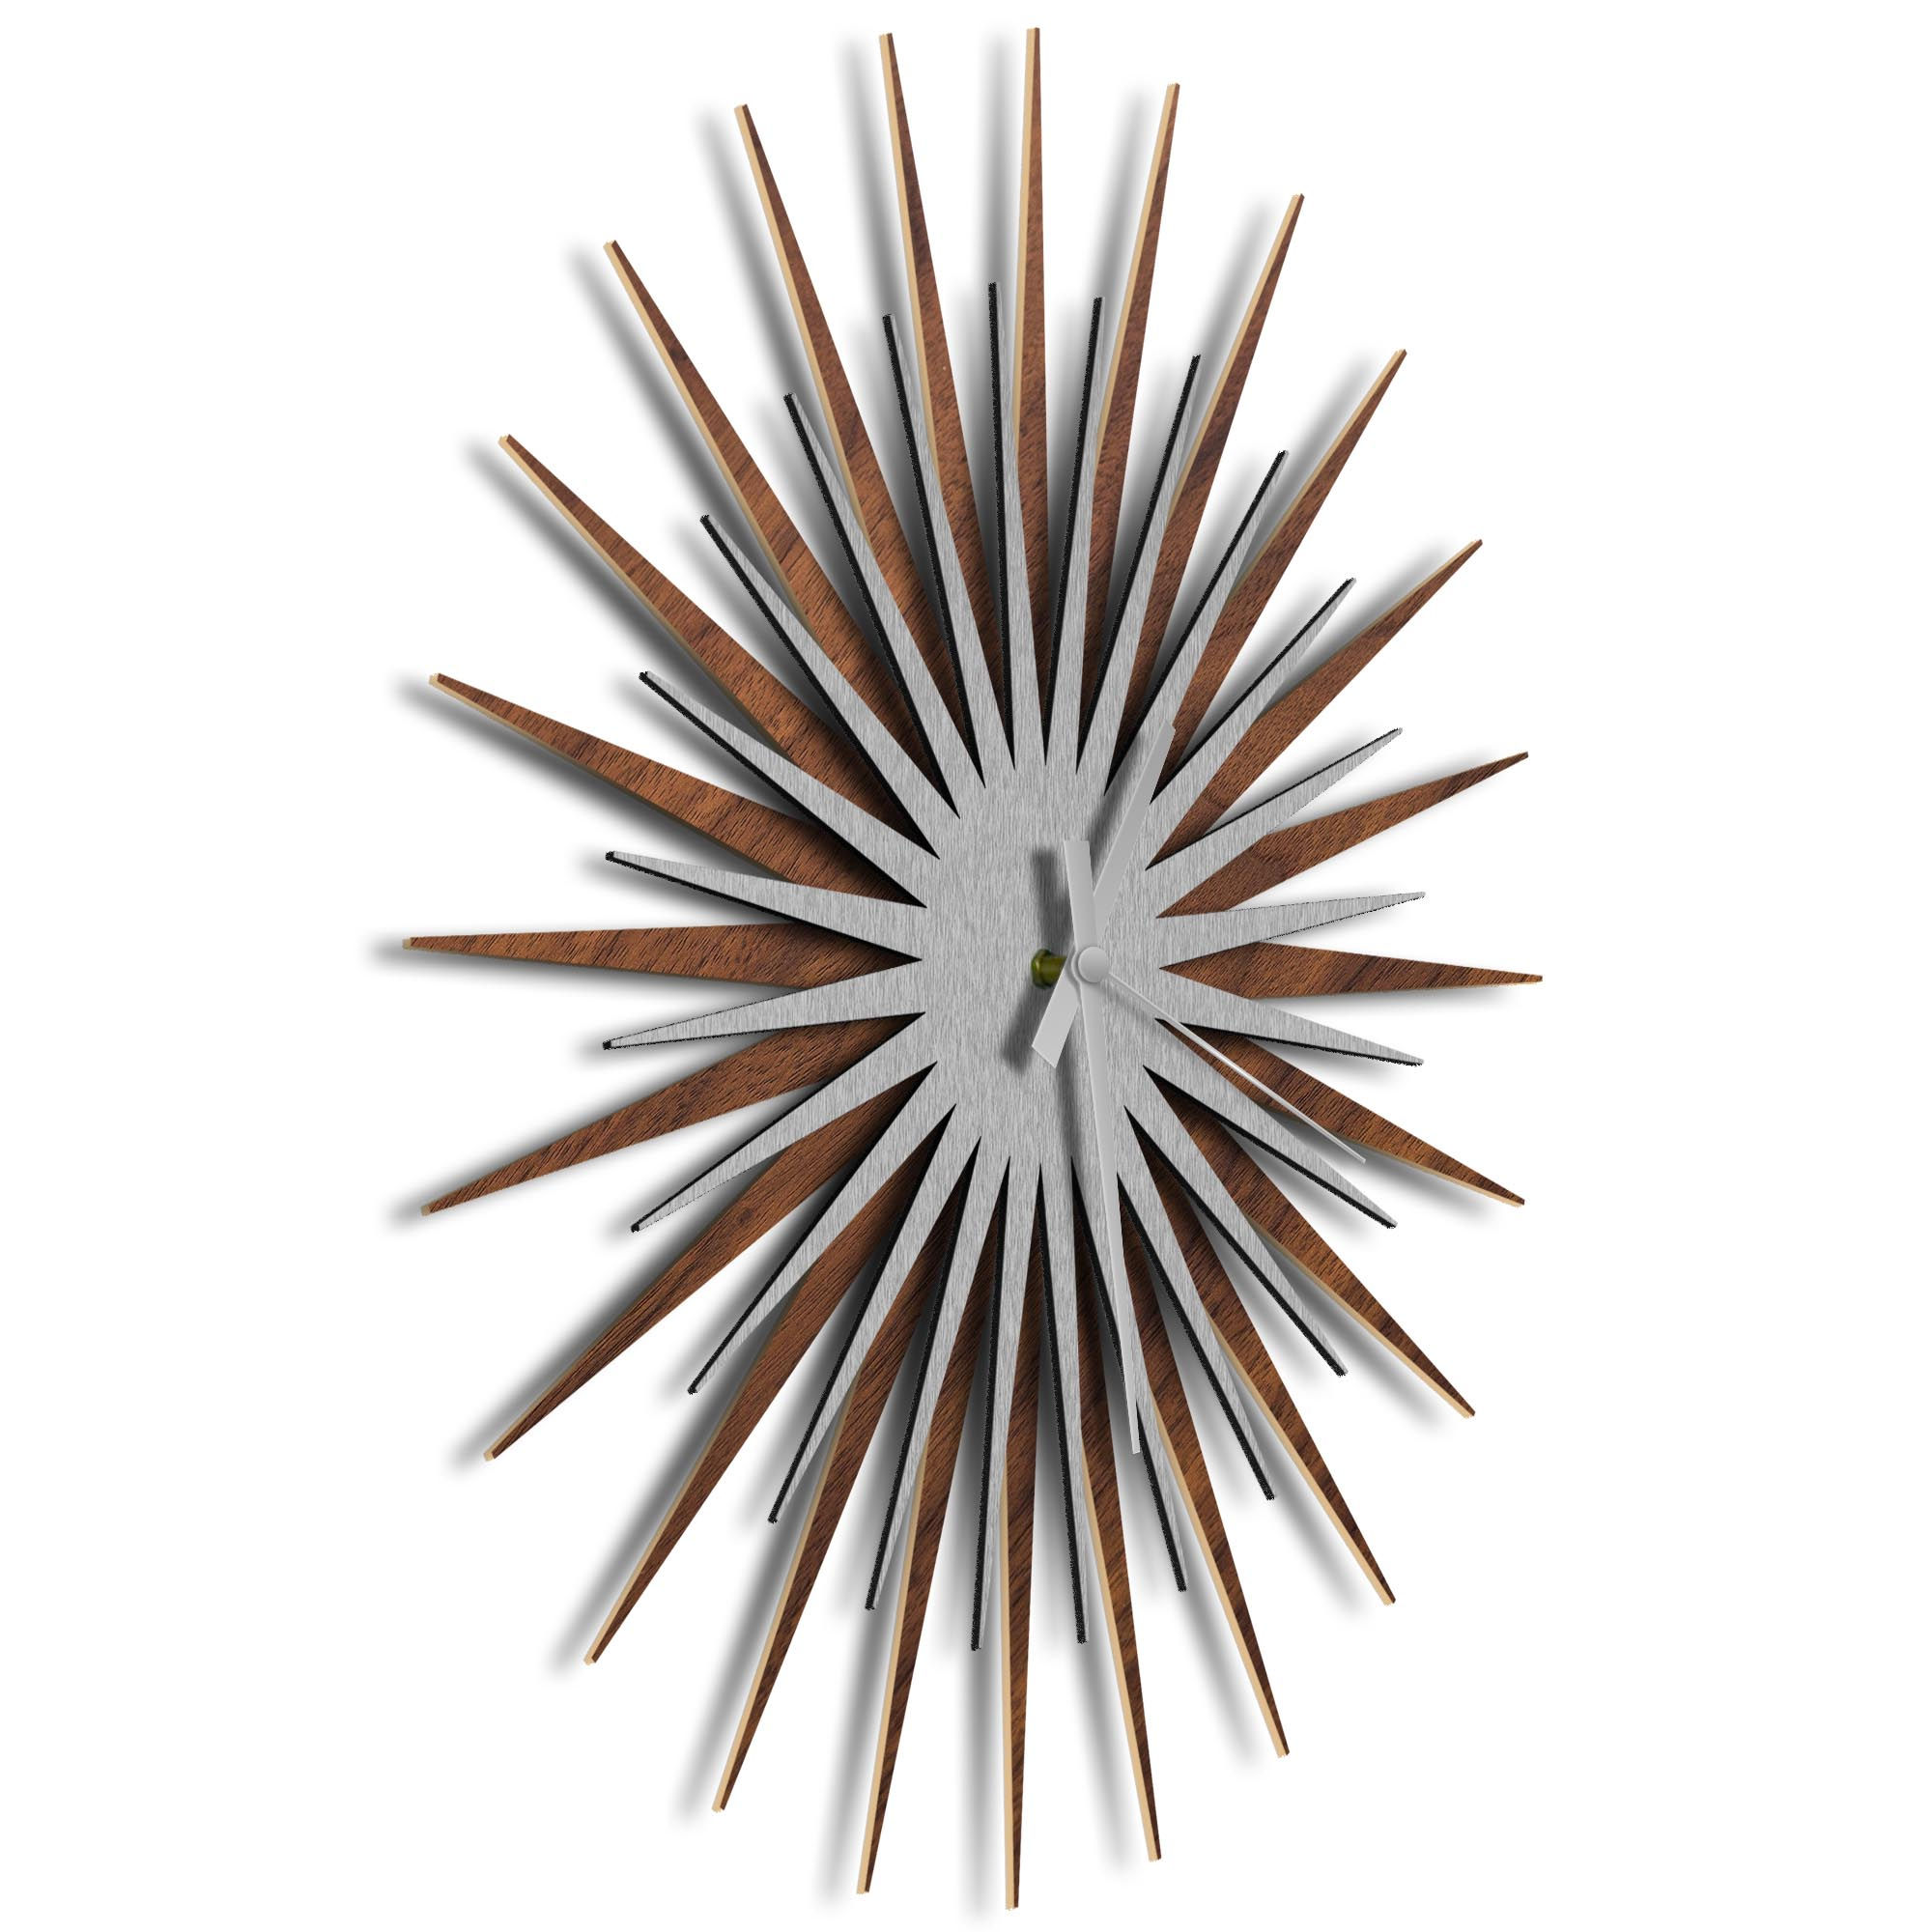 Atomic Era Clock Walnut Silver Grey by Adam Schwoeppe - Mid-Century Modern Clock on Brushed Walnut Polymetal - Image 2